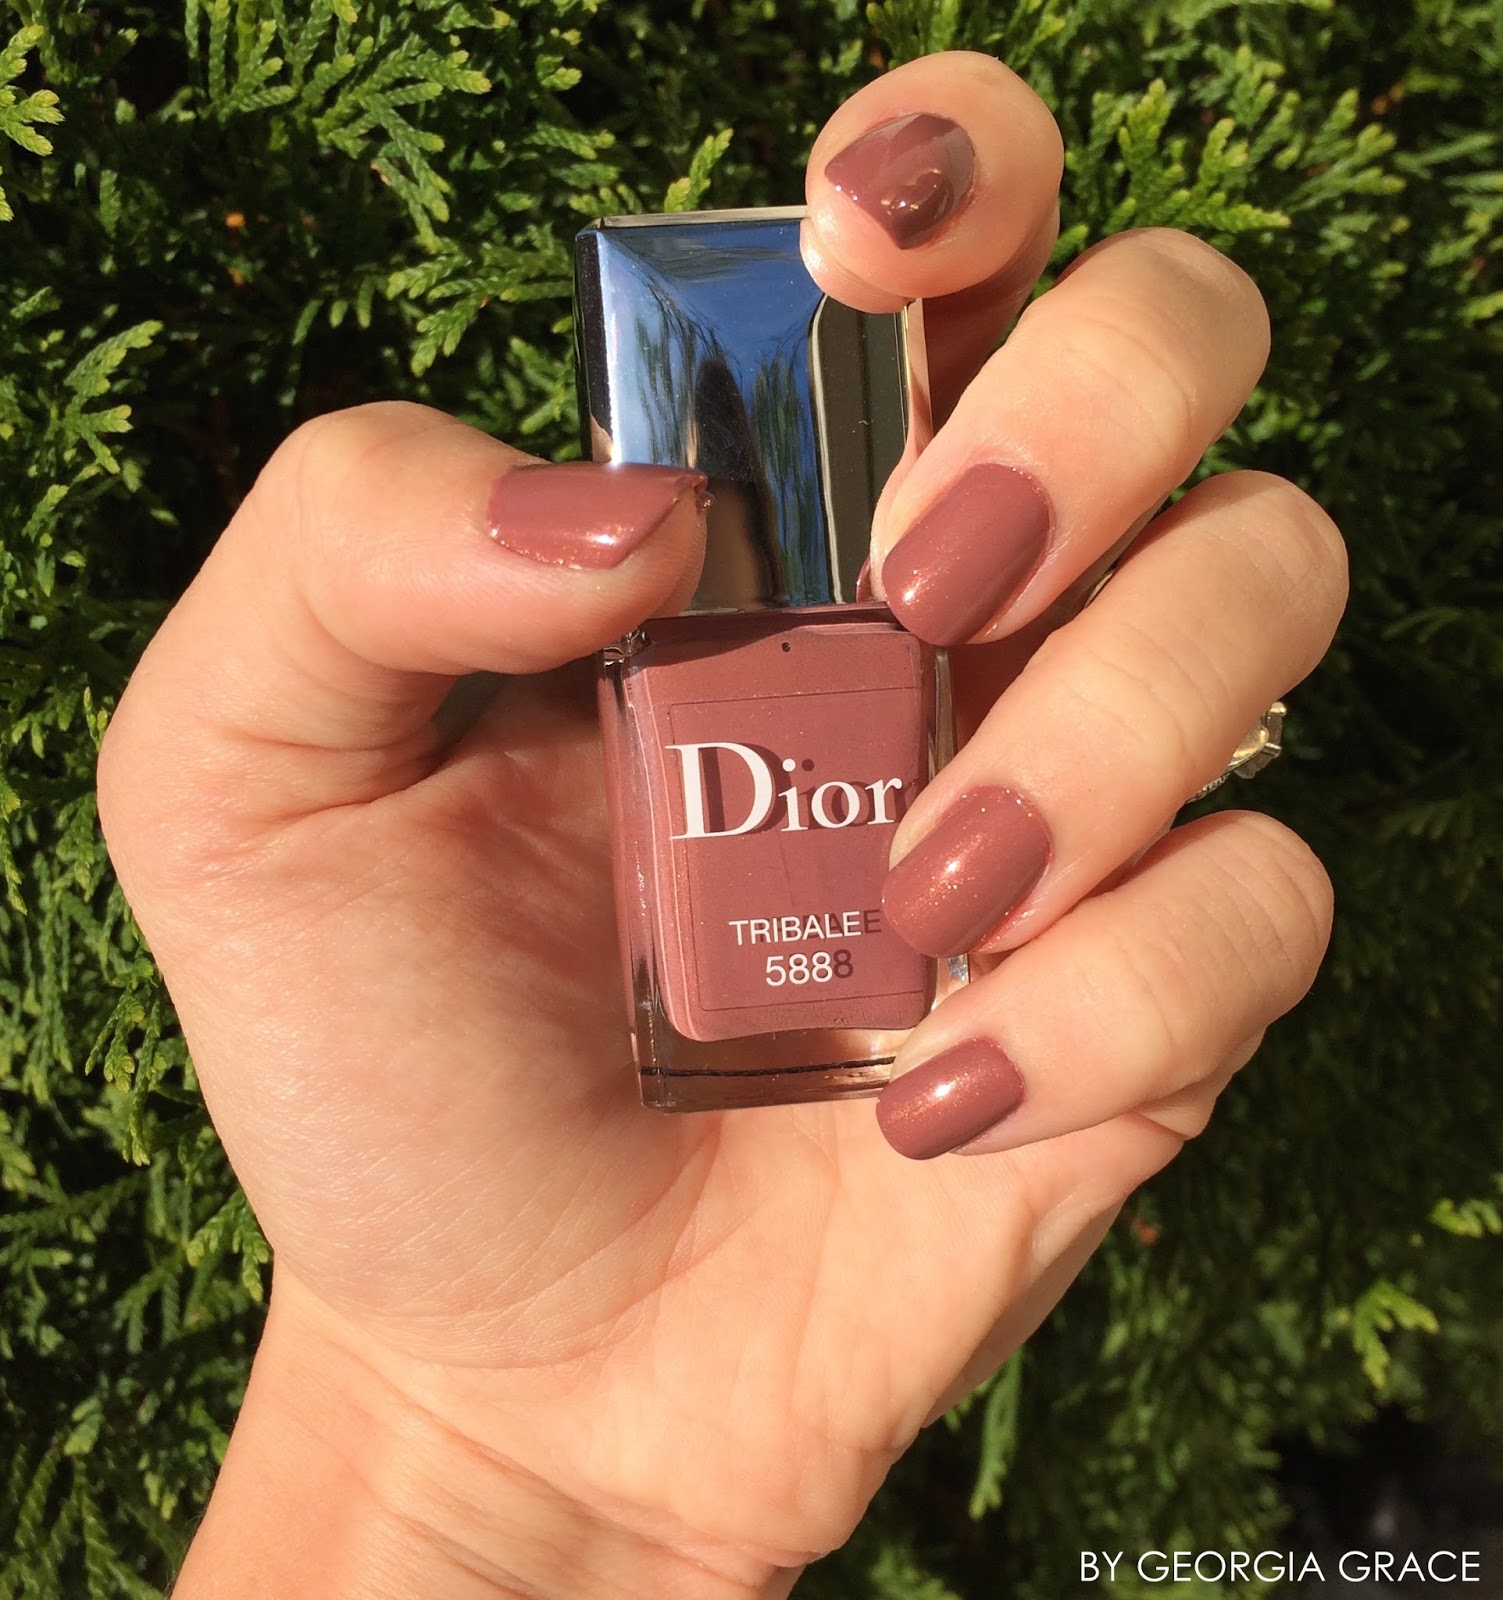 Dior Addict Limited Edition Nail Polish Swatches & Review | By ...